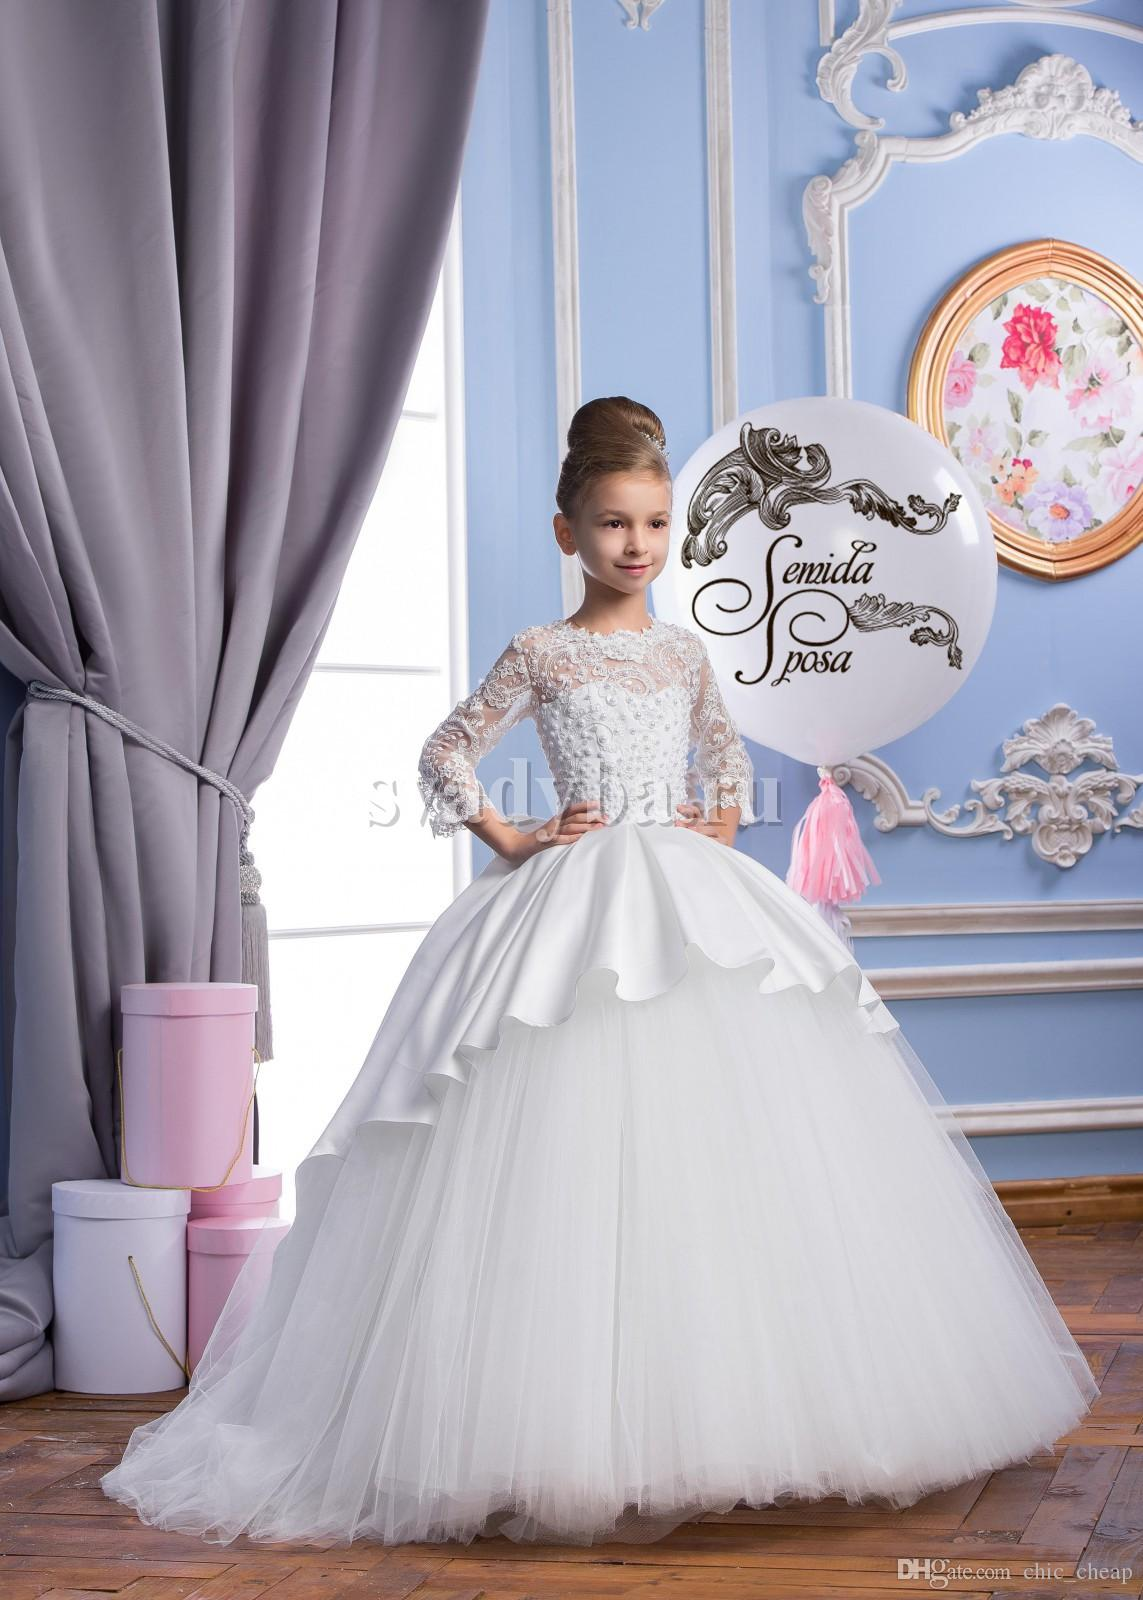 Lace Pearls 2018 Arabic Flower Girl Dresses Lace Sleeves Satin&Tulle Child Wedding Dresses Vintage Little Girl Pageant Dresses FG01